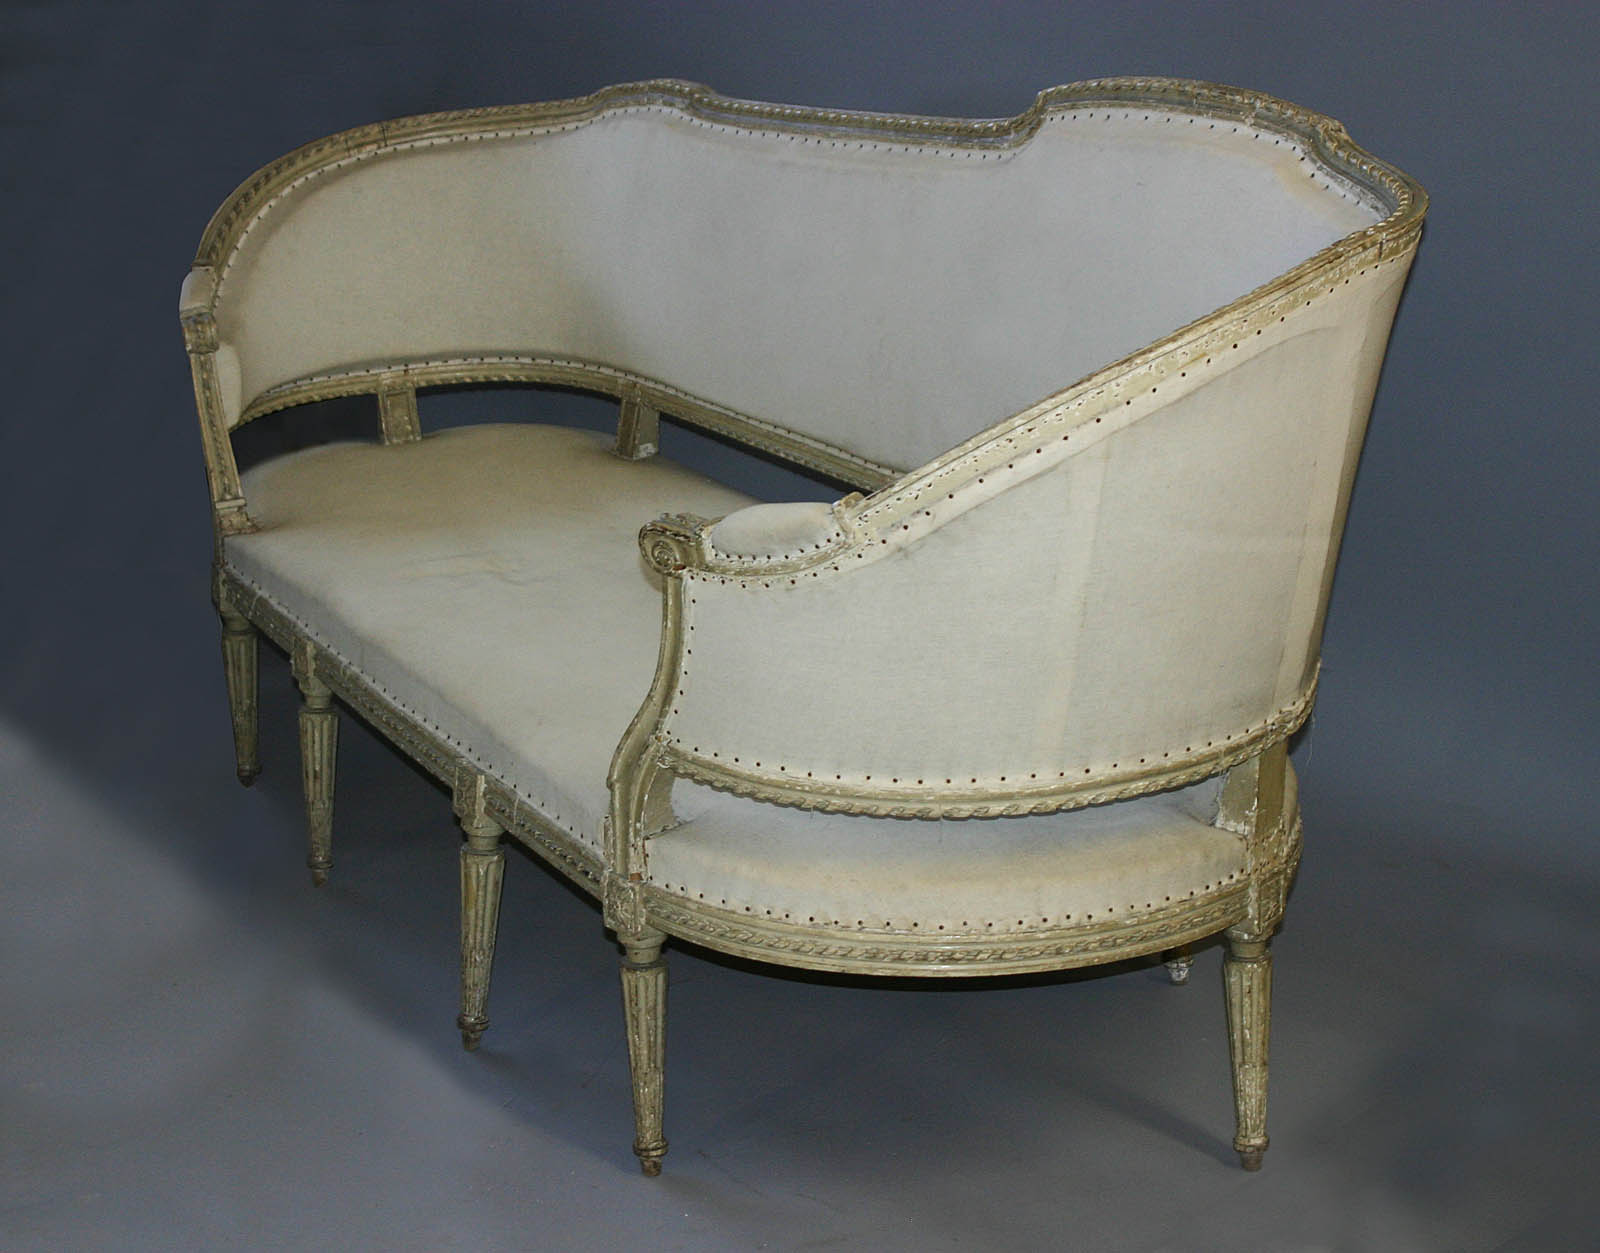 Very fine french louis xvi period canap for sale for Canape insurance